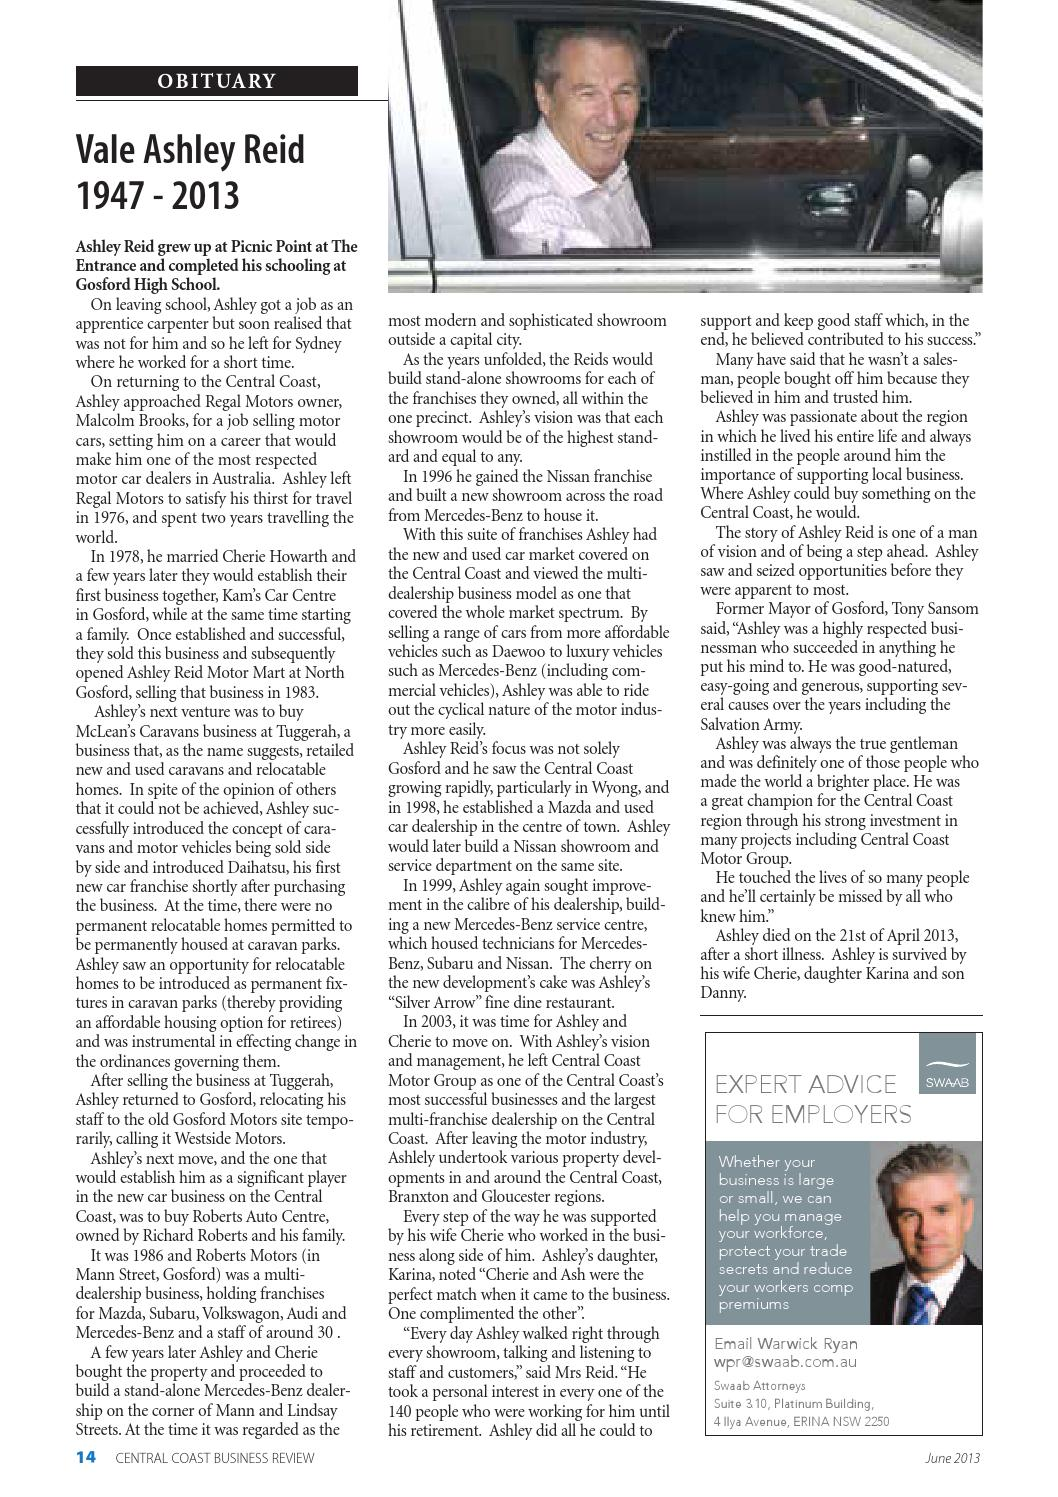 Central Coast Business Review June 2013 by Central Coast